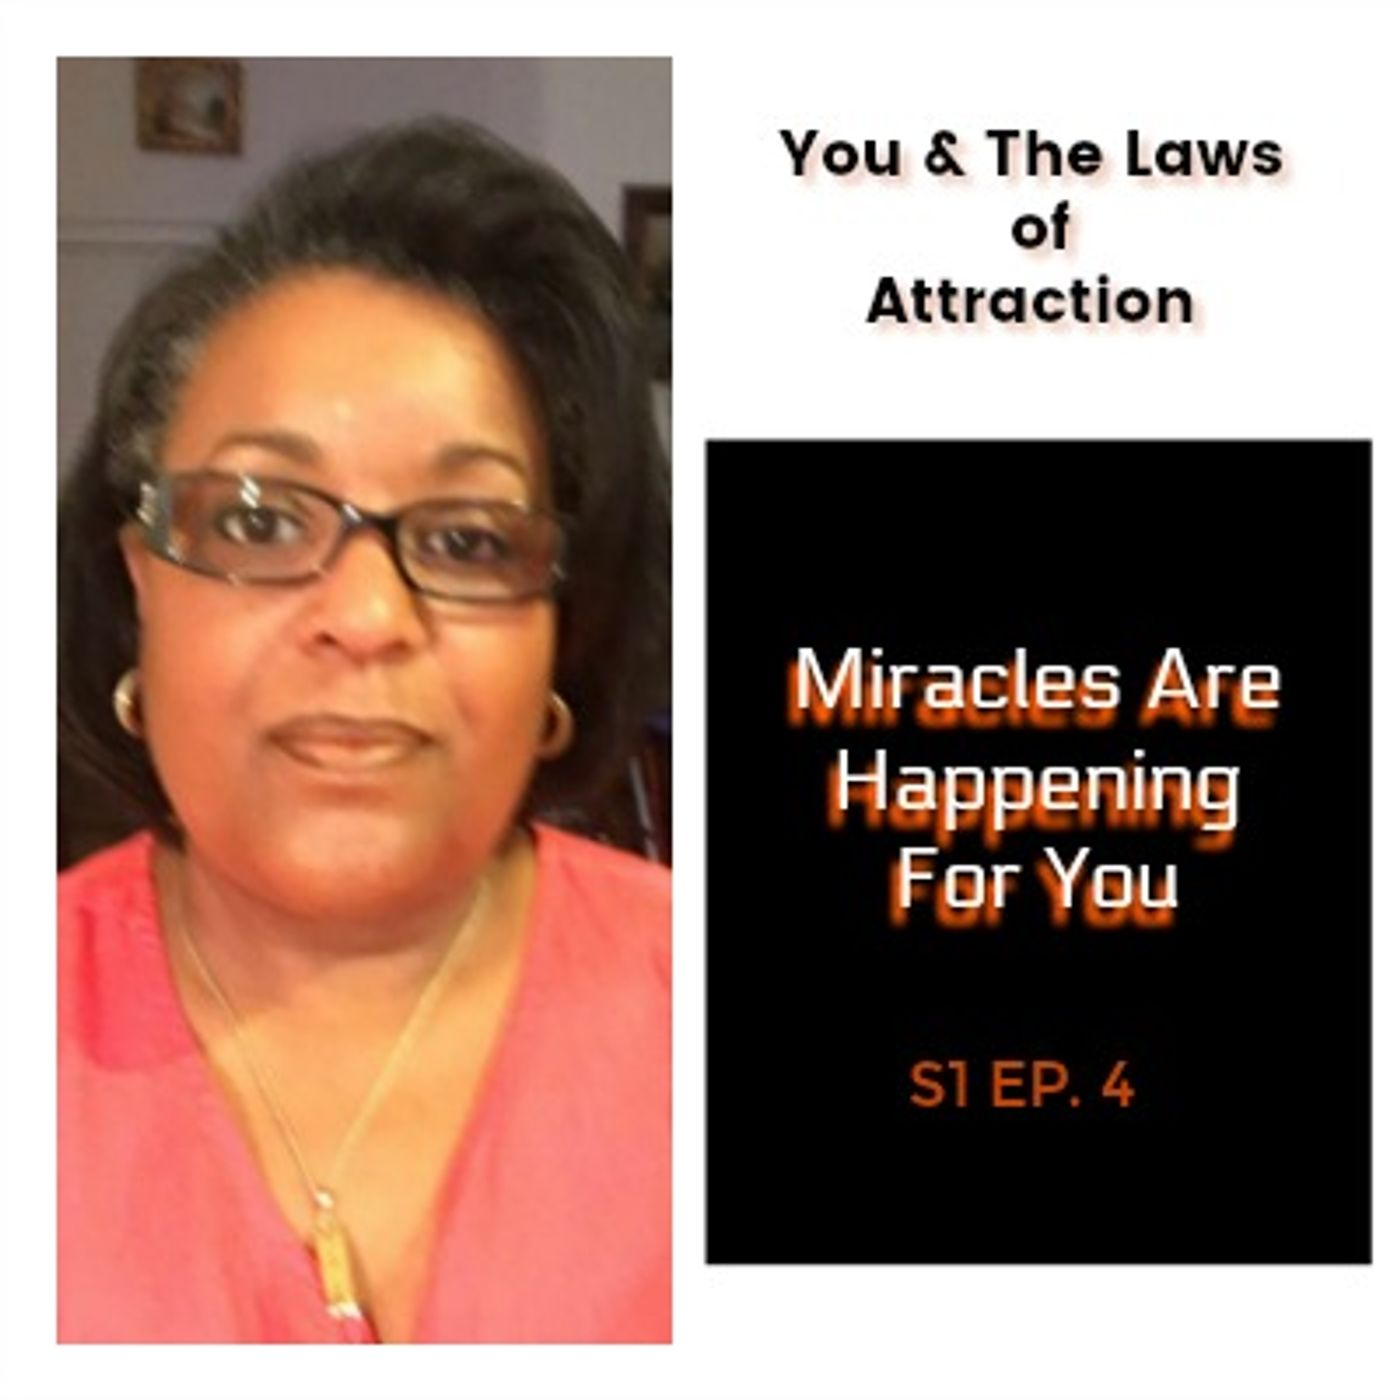 Miracles Happen And They Are Happening For You